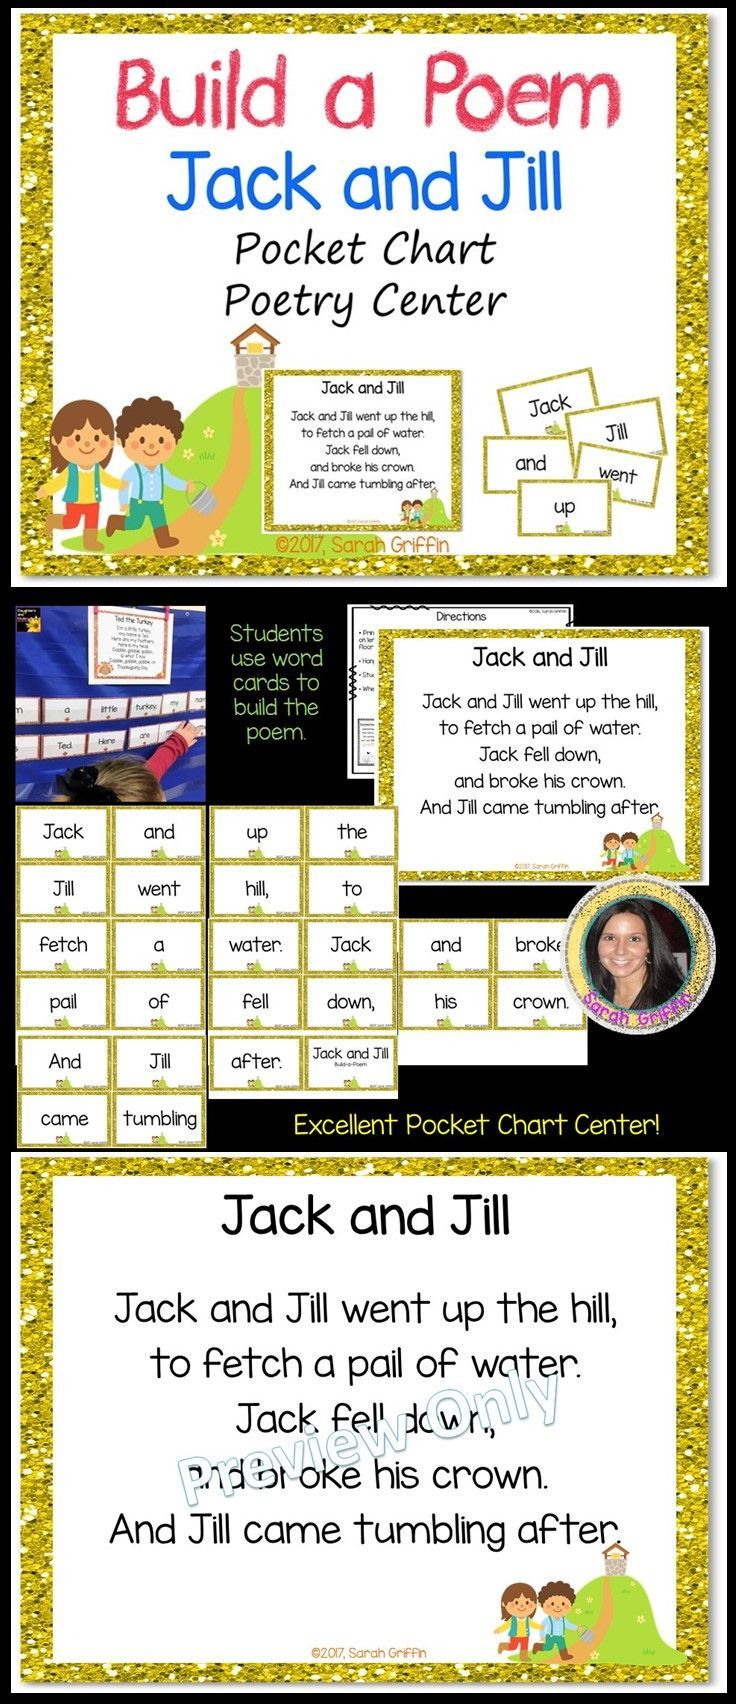 Jack and Jill   Build a Poem   Nursery Rhymes   Poems for Kids   Pocket Chart Center